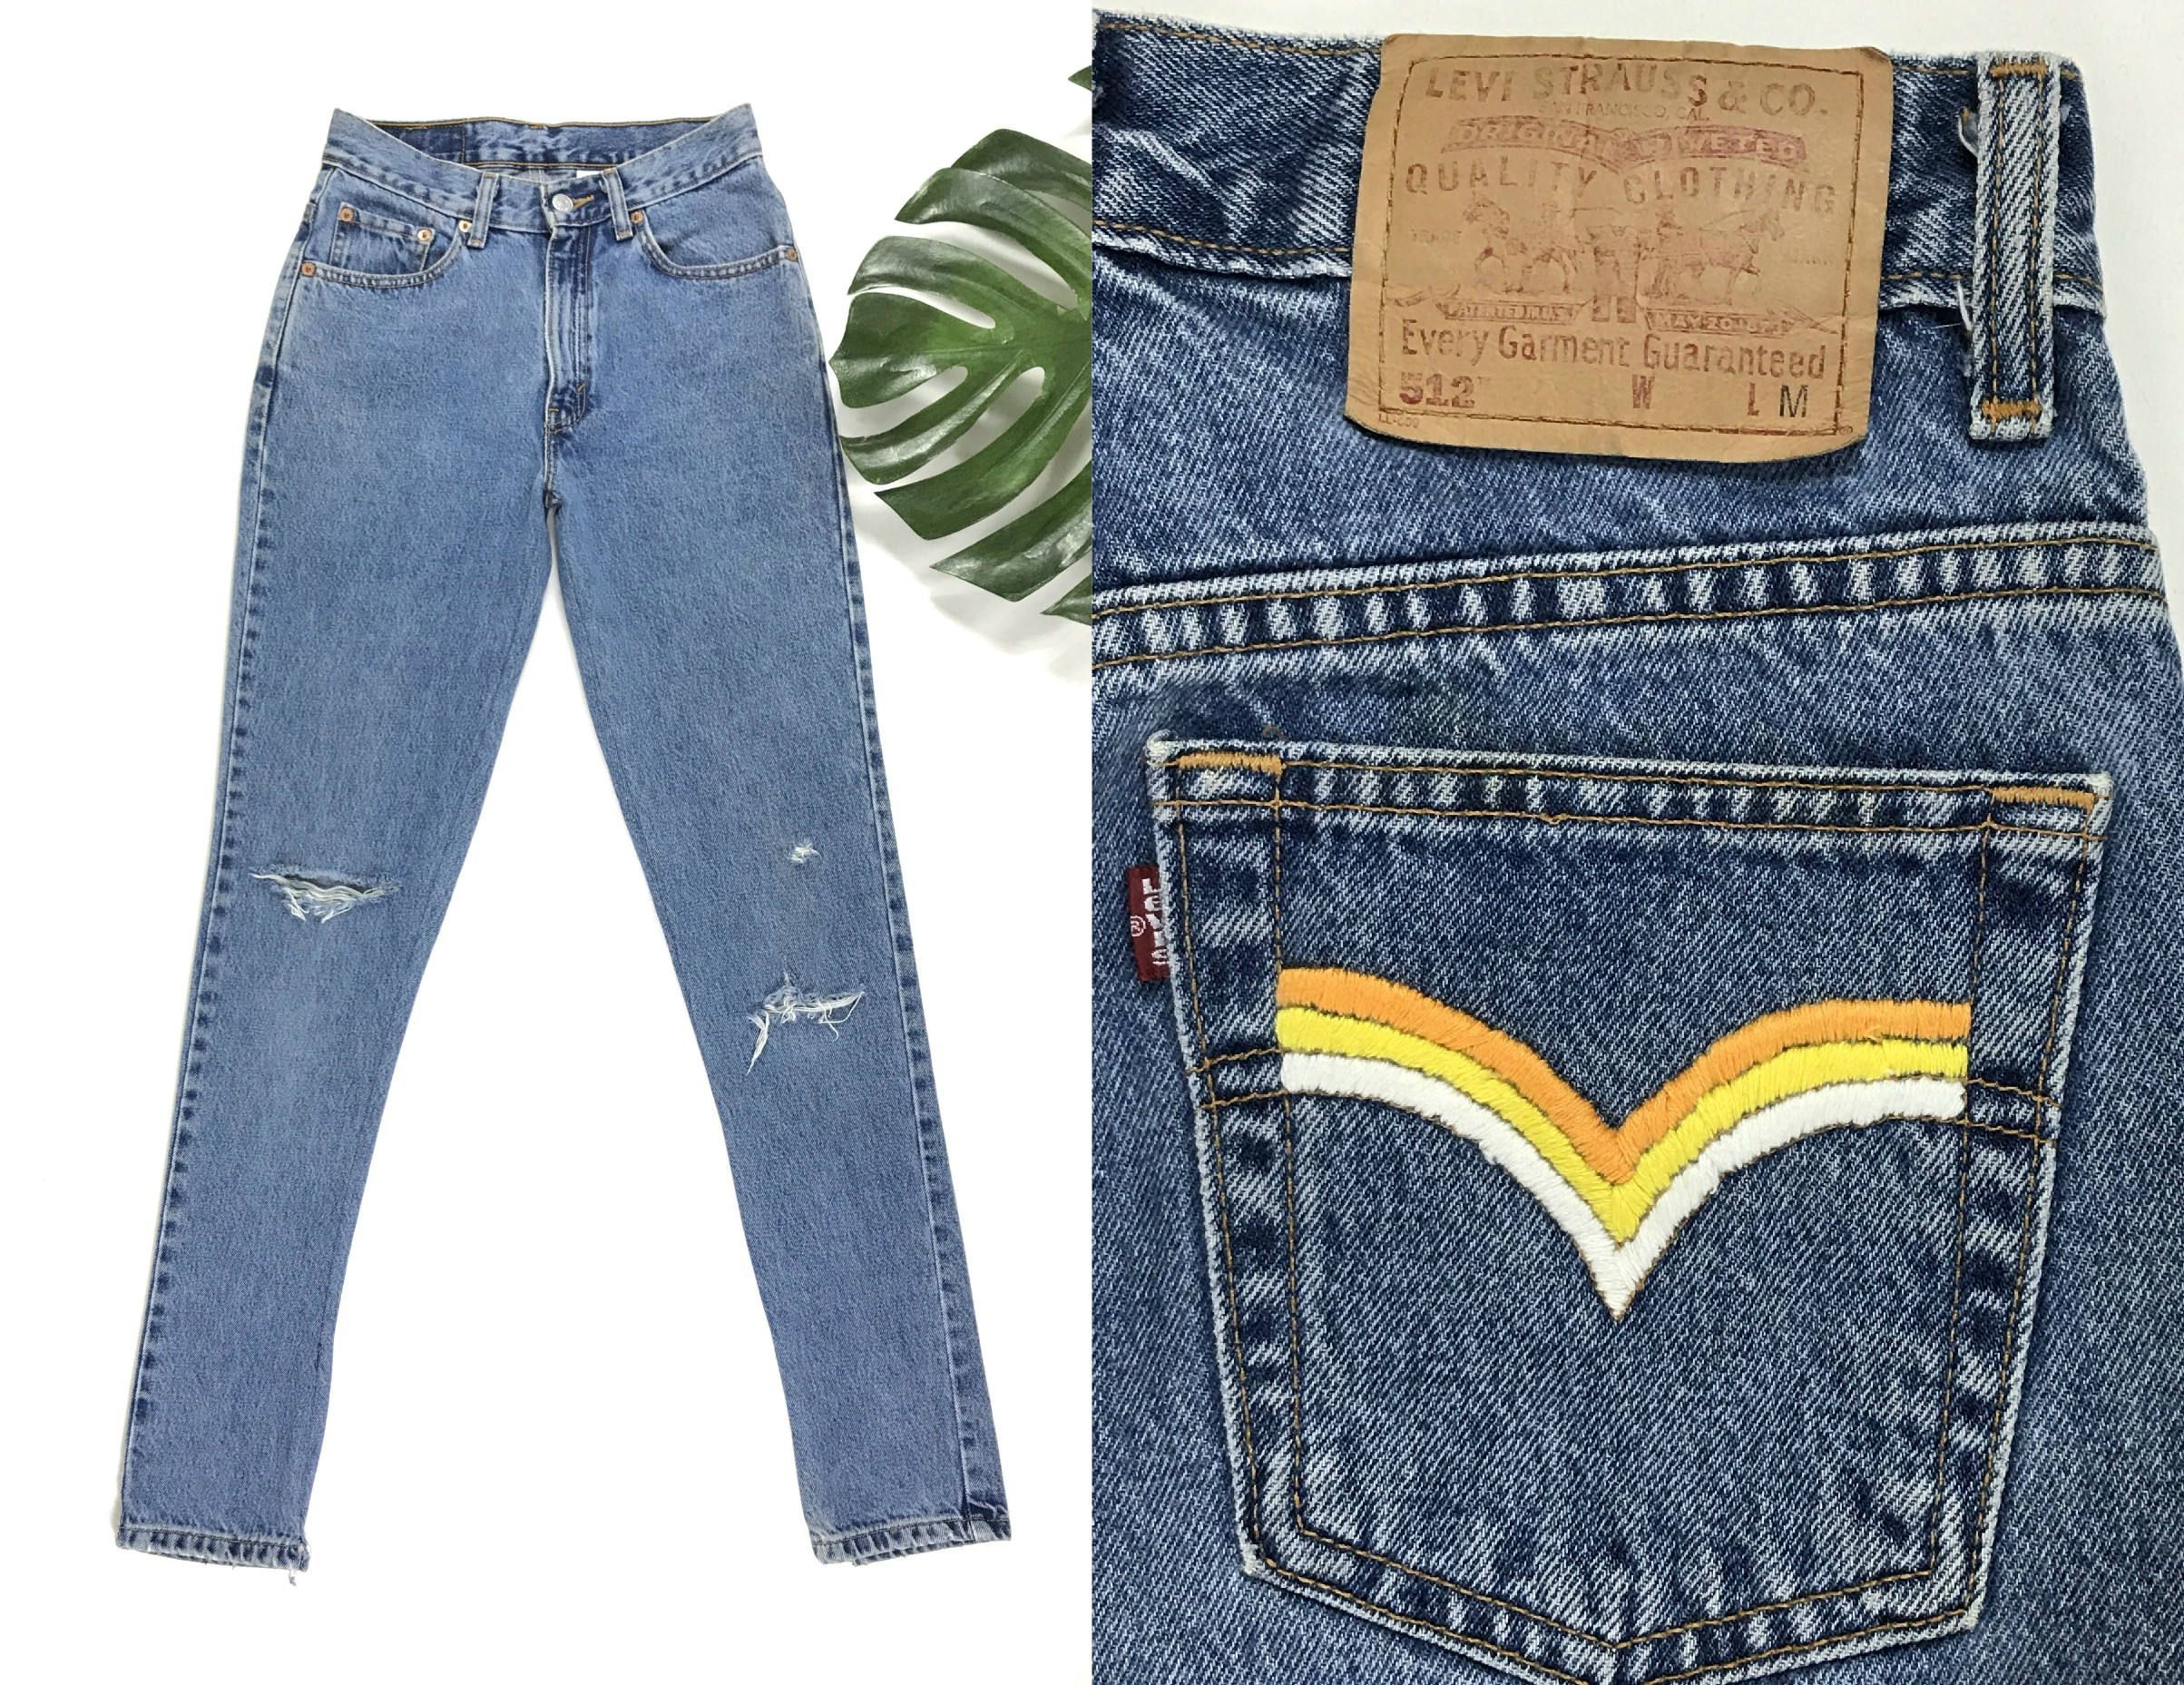 Vintage Levi s rainbow pocket jeans, hand embroidered retro high waisted  mom jeans, 1990s Levis 512, 90s straight leg distressed denim pants by ... 56016c82771